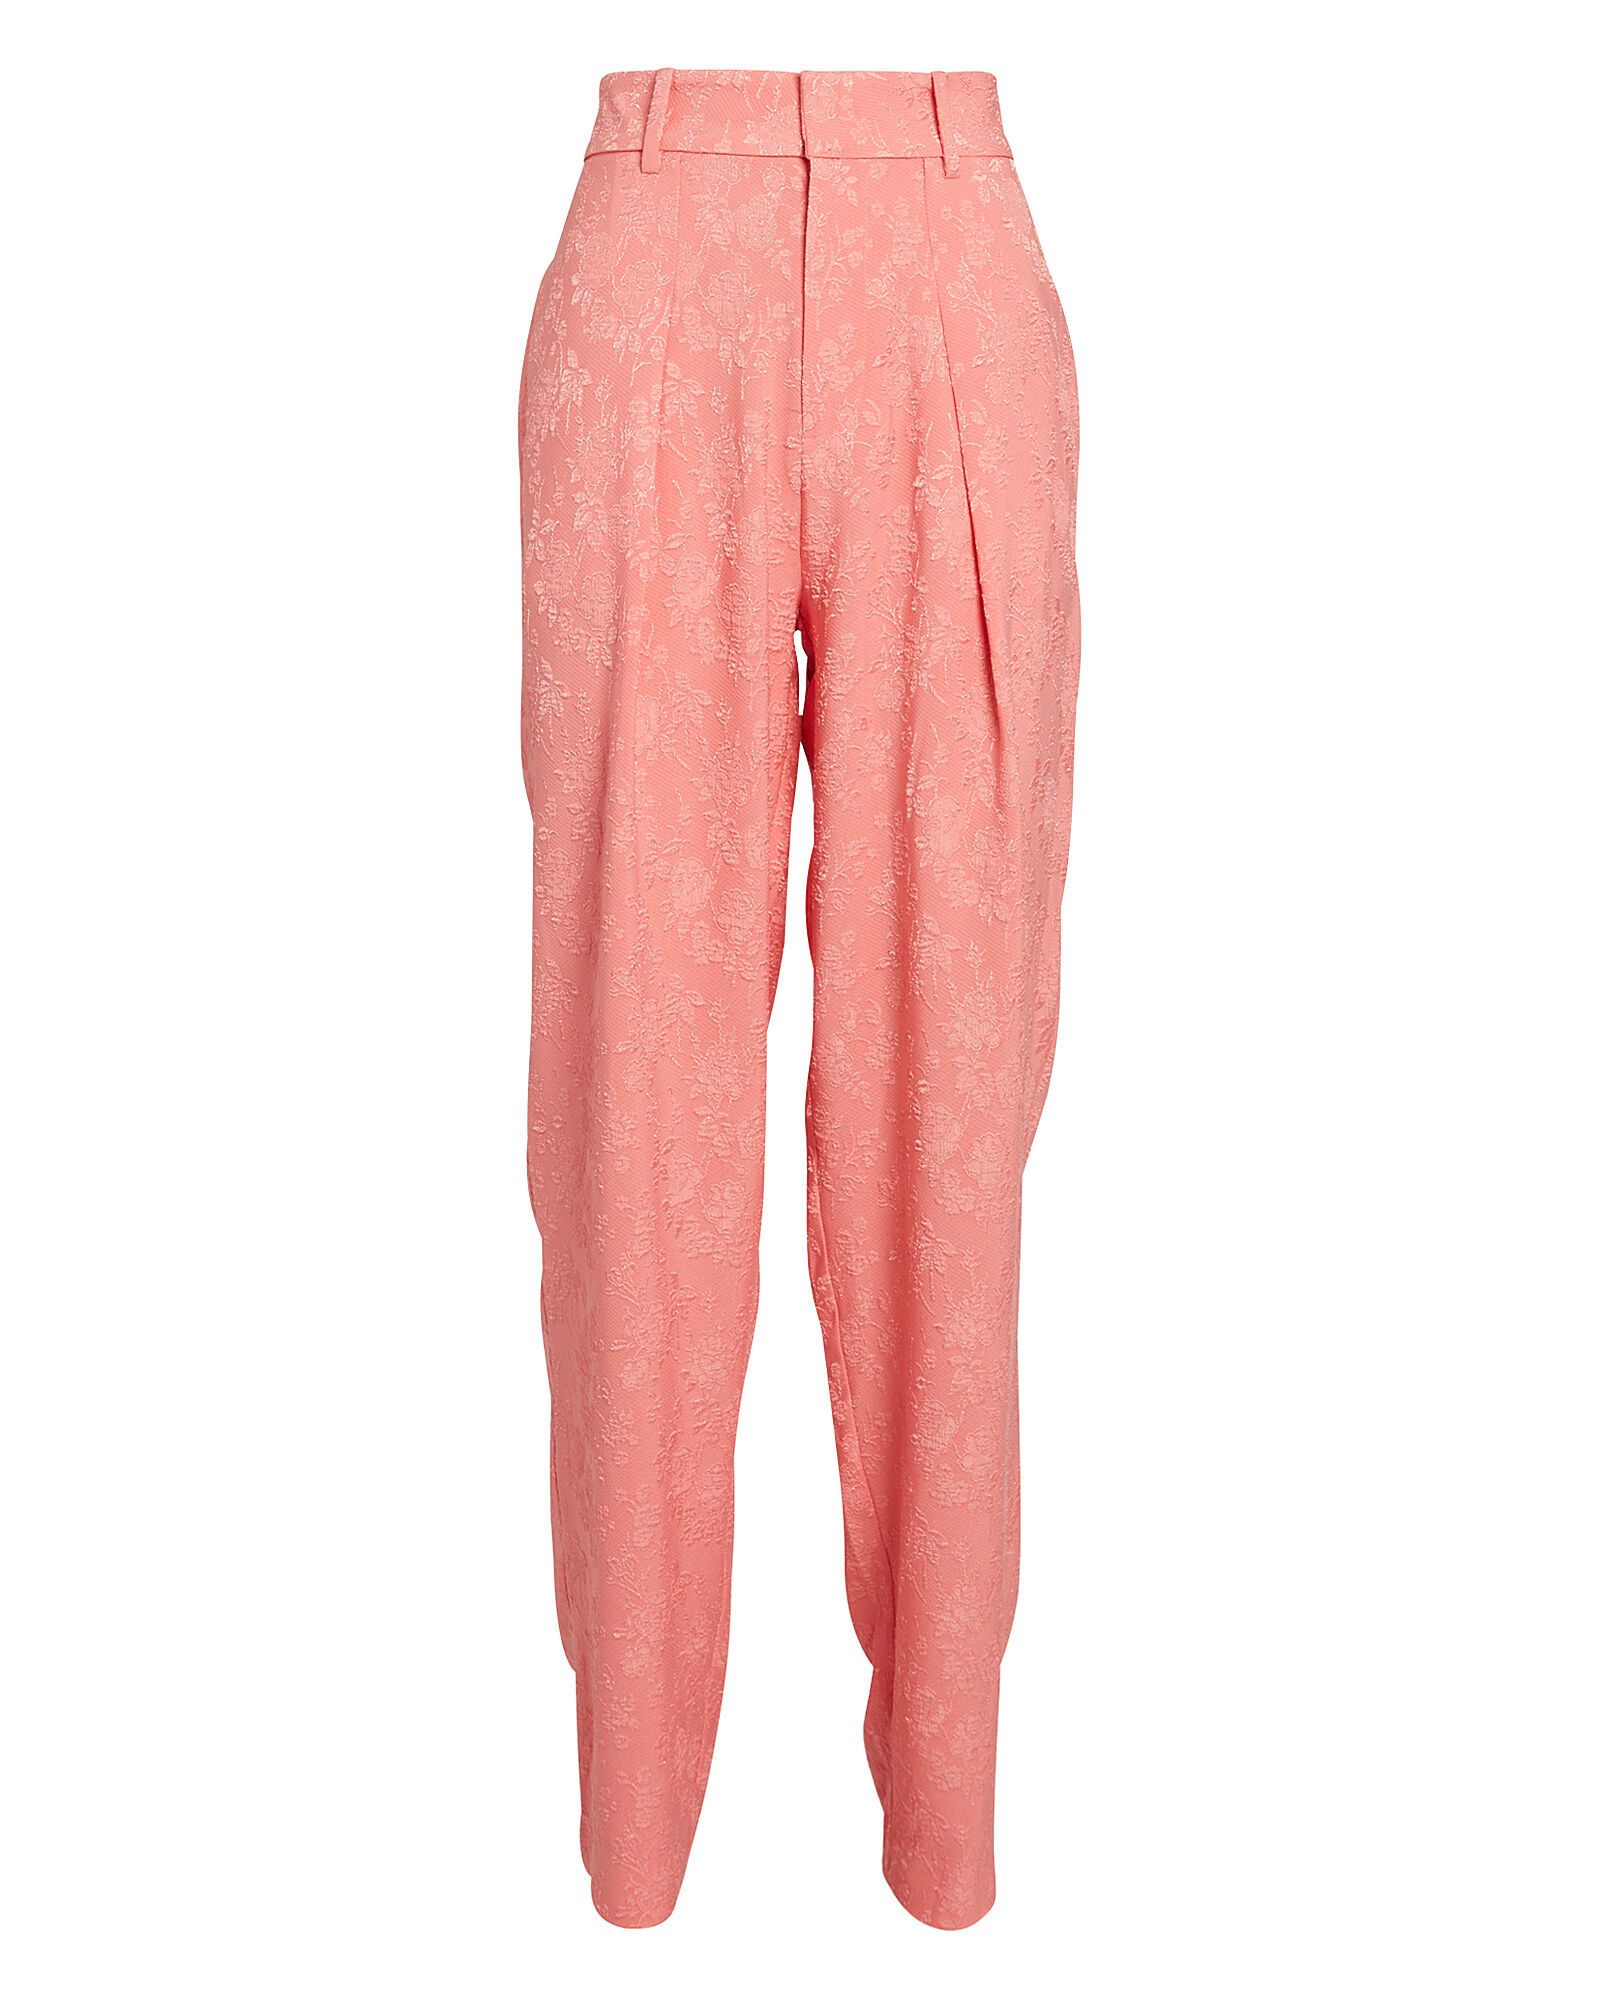 Carrie Jacquard Trousers, PINK, hi-res